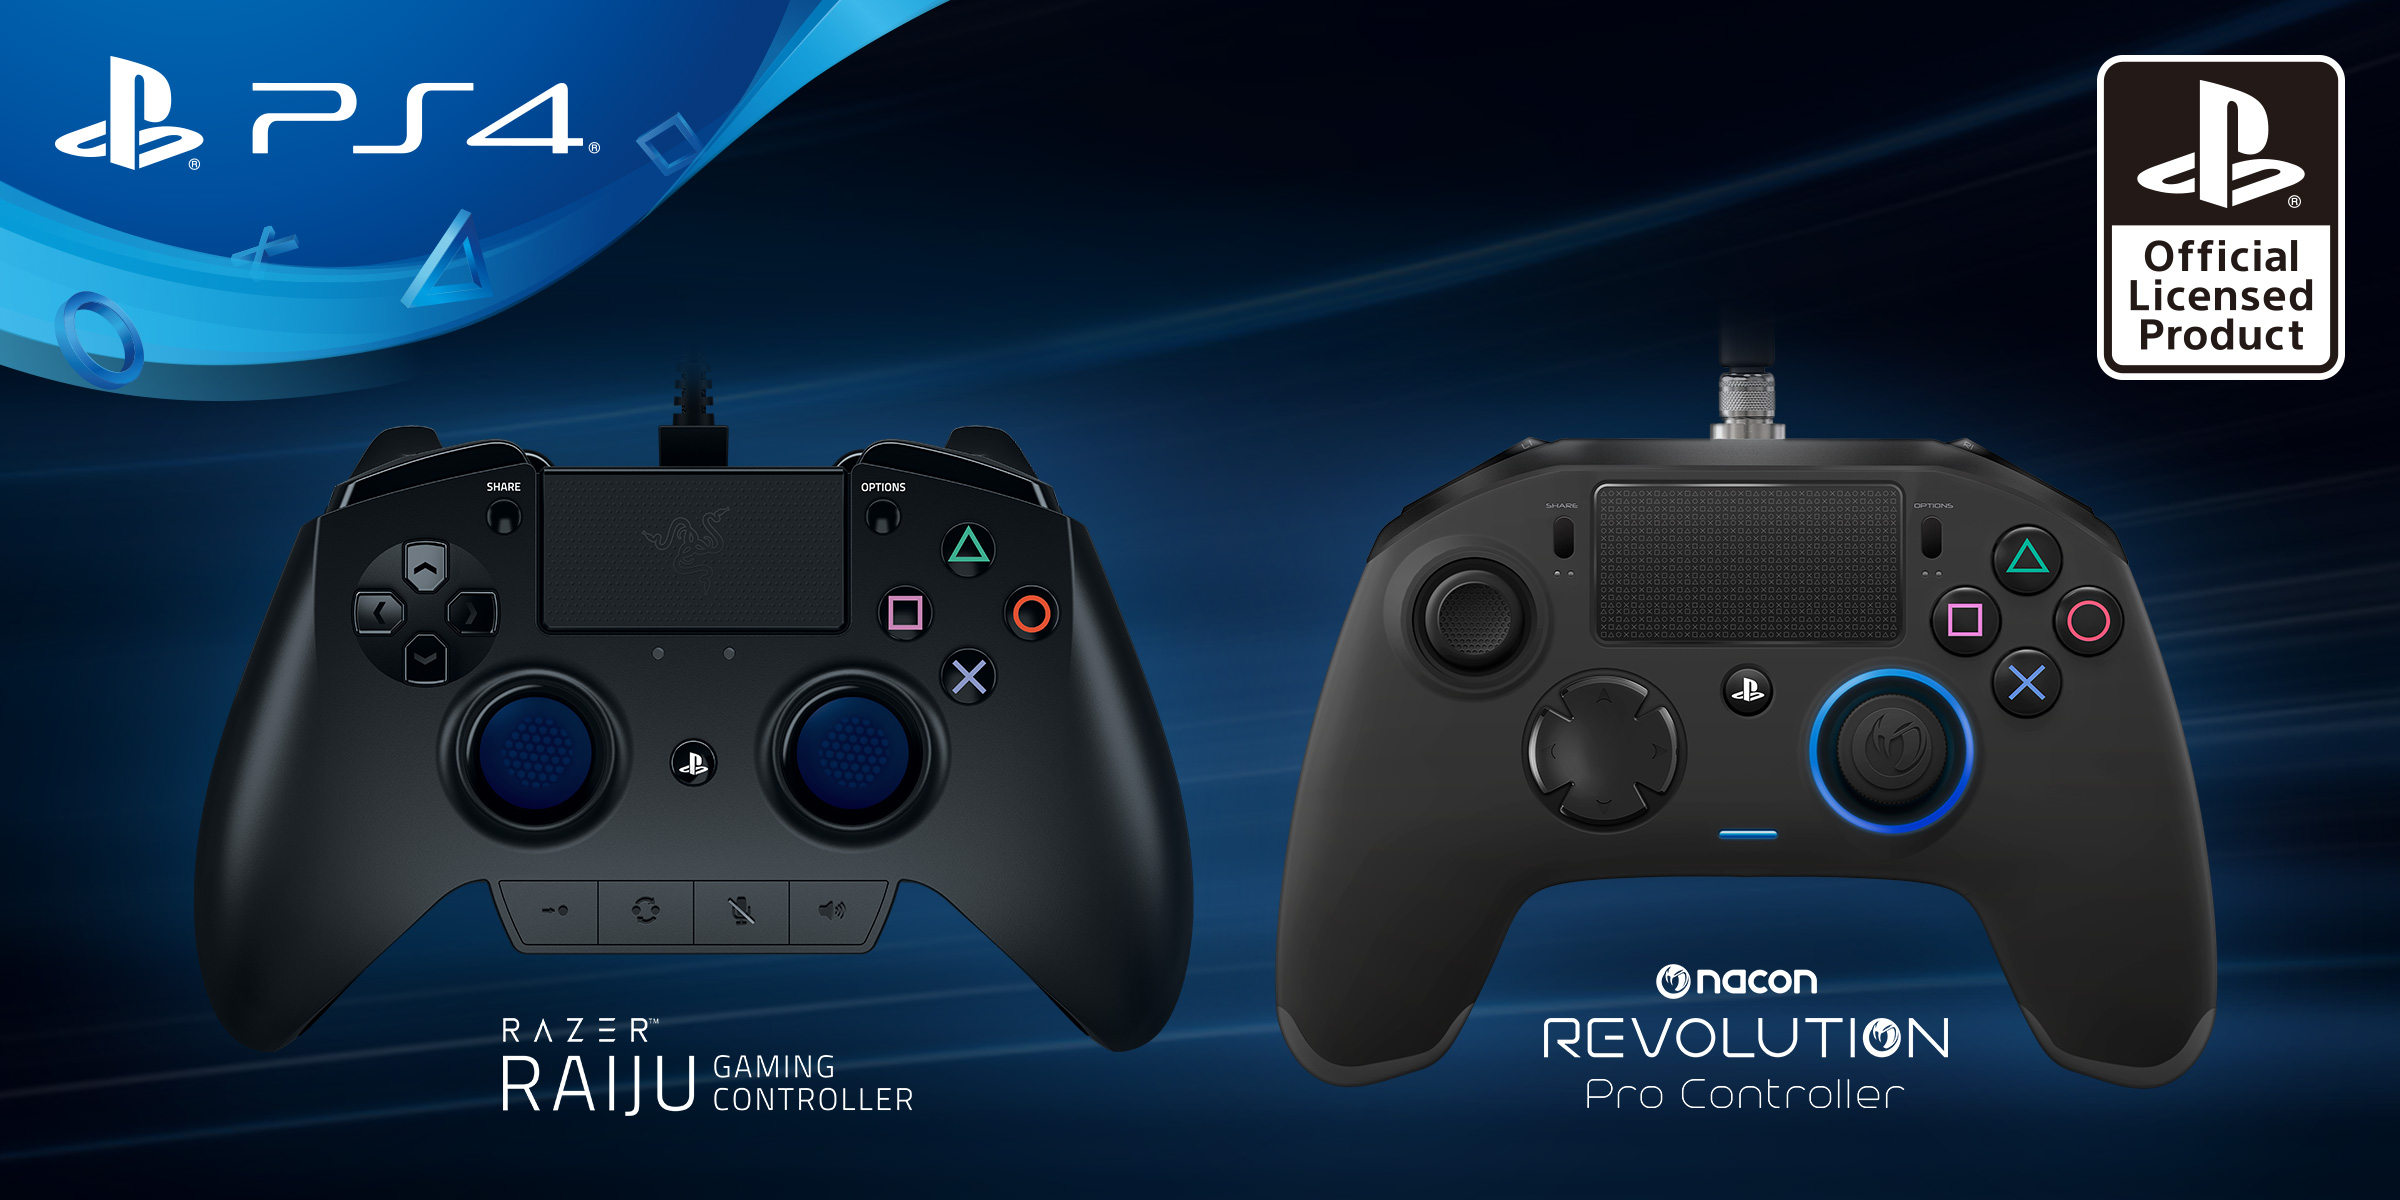 First look at two new licensed pro controllers for PS4 get cold shoulder